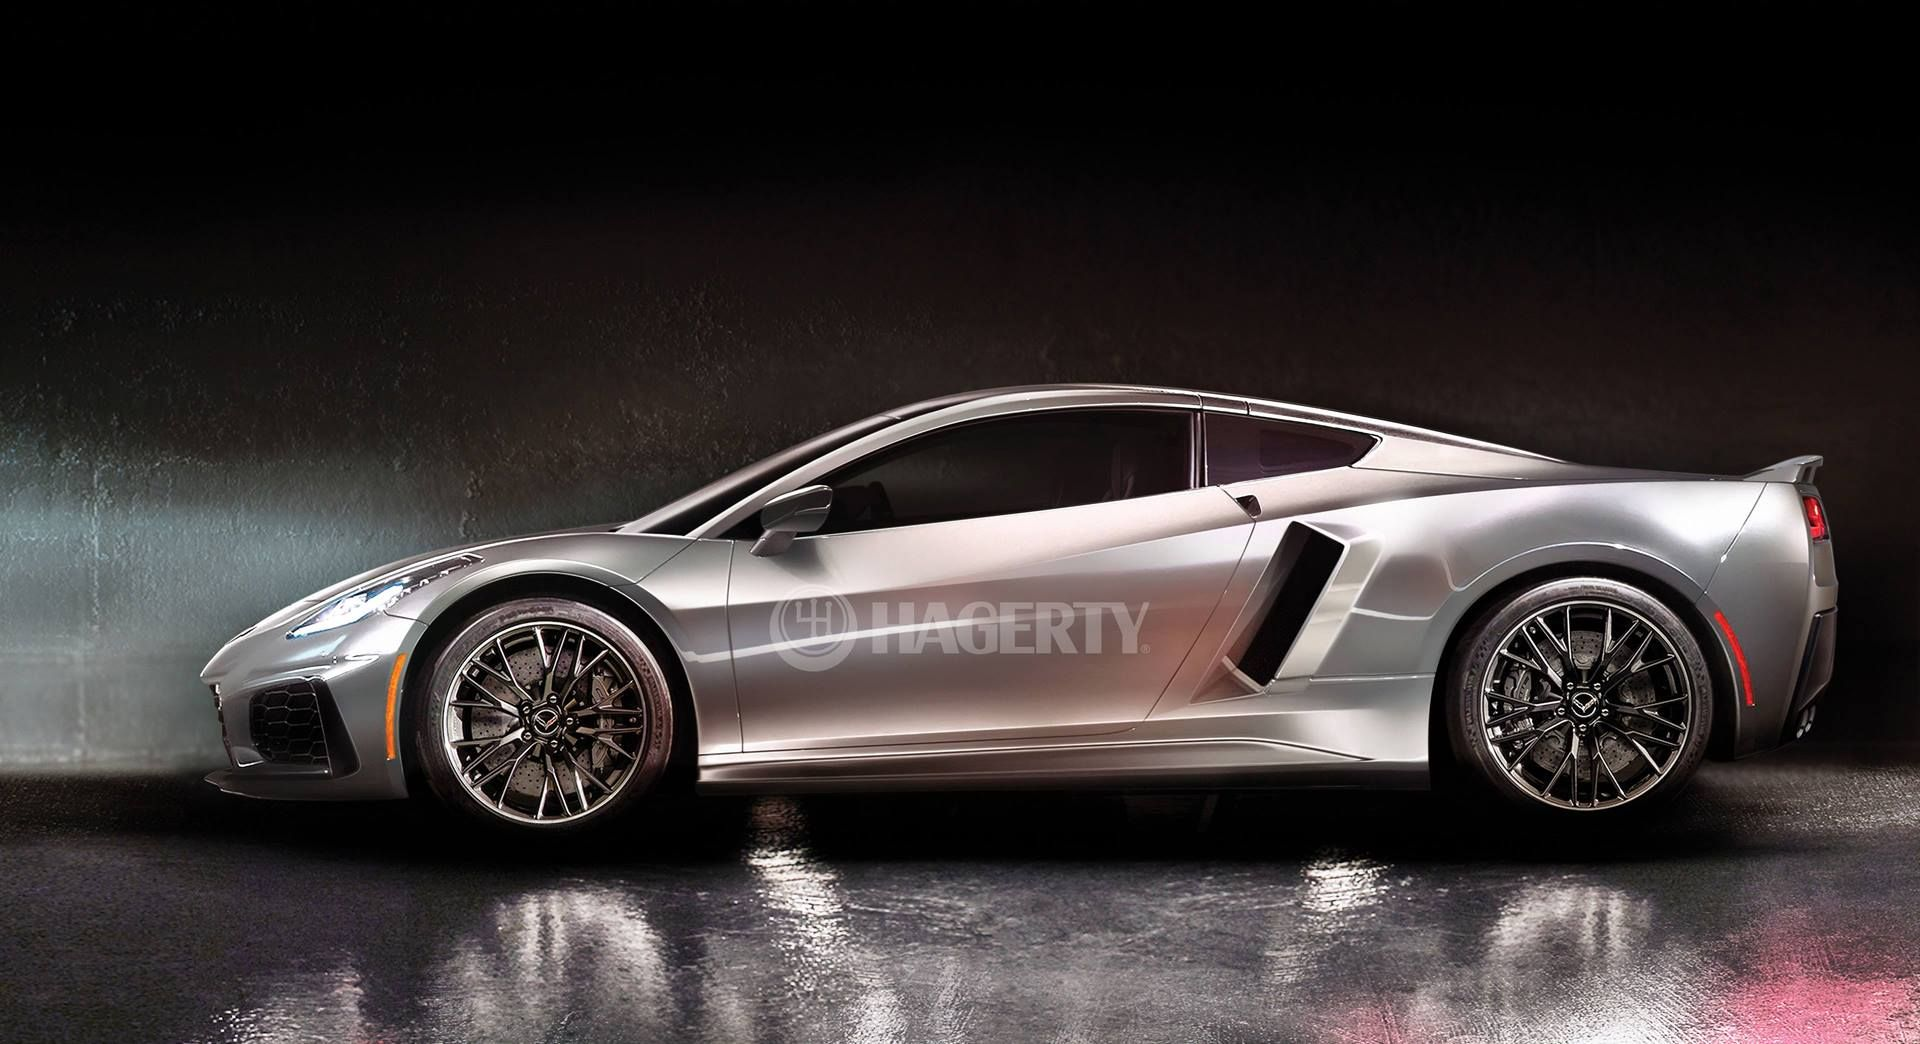 Here S What The Mid Engine Corvette C8 Will Look Like Corvette Classic Corvette Corvette Zr1